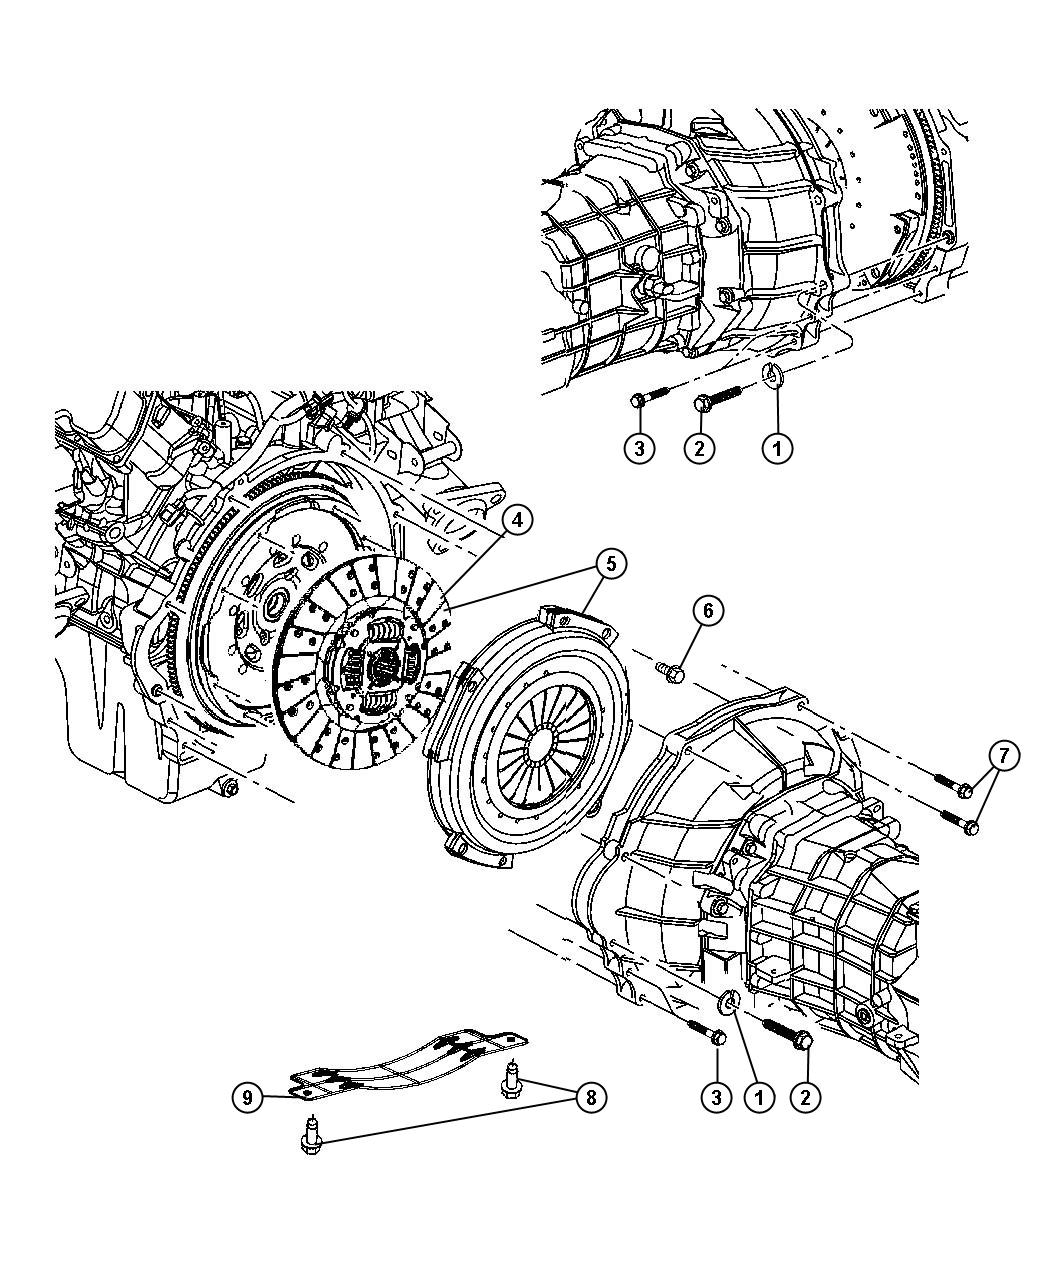 Clutch Assembly With Ewc Engine